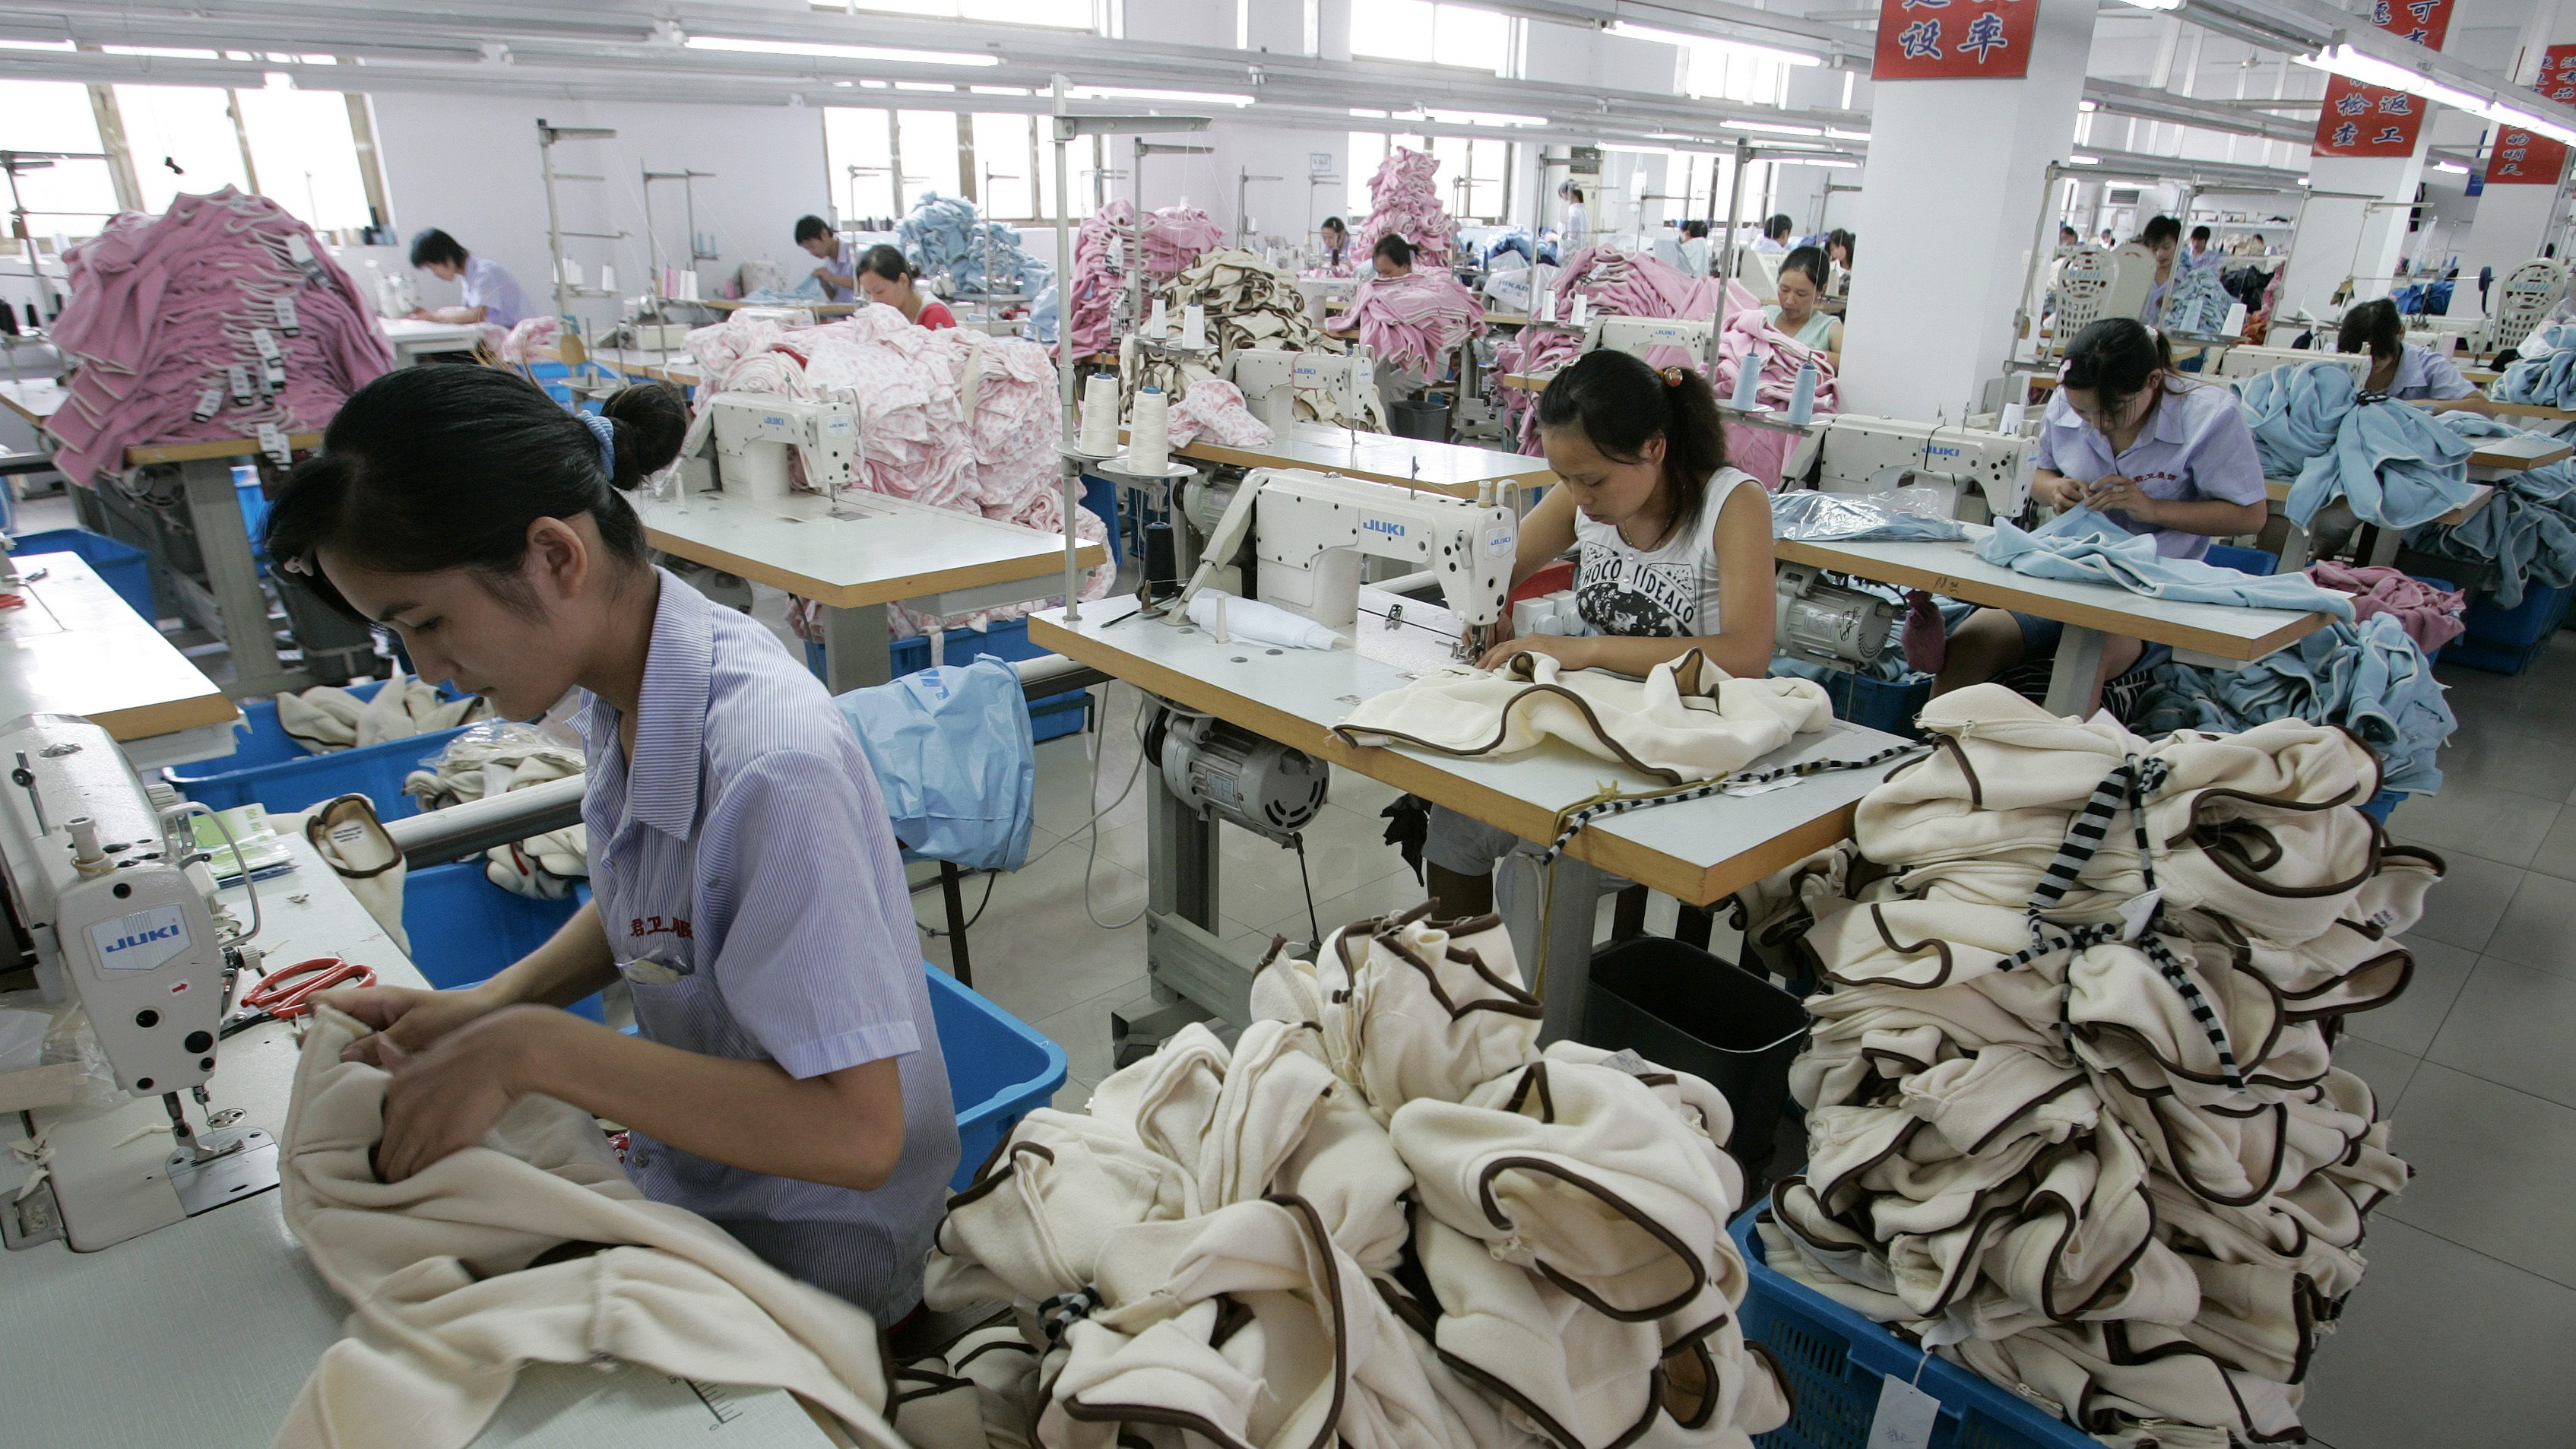 If China is no longer the world's factory, what will replace it? — Quartz